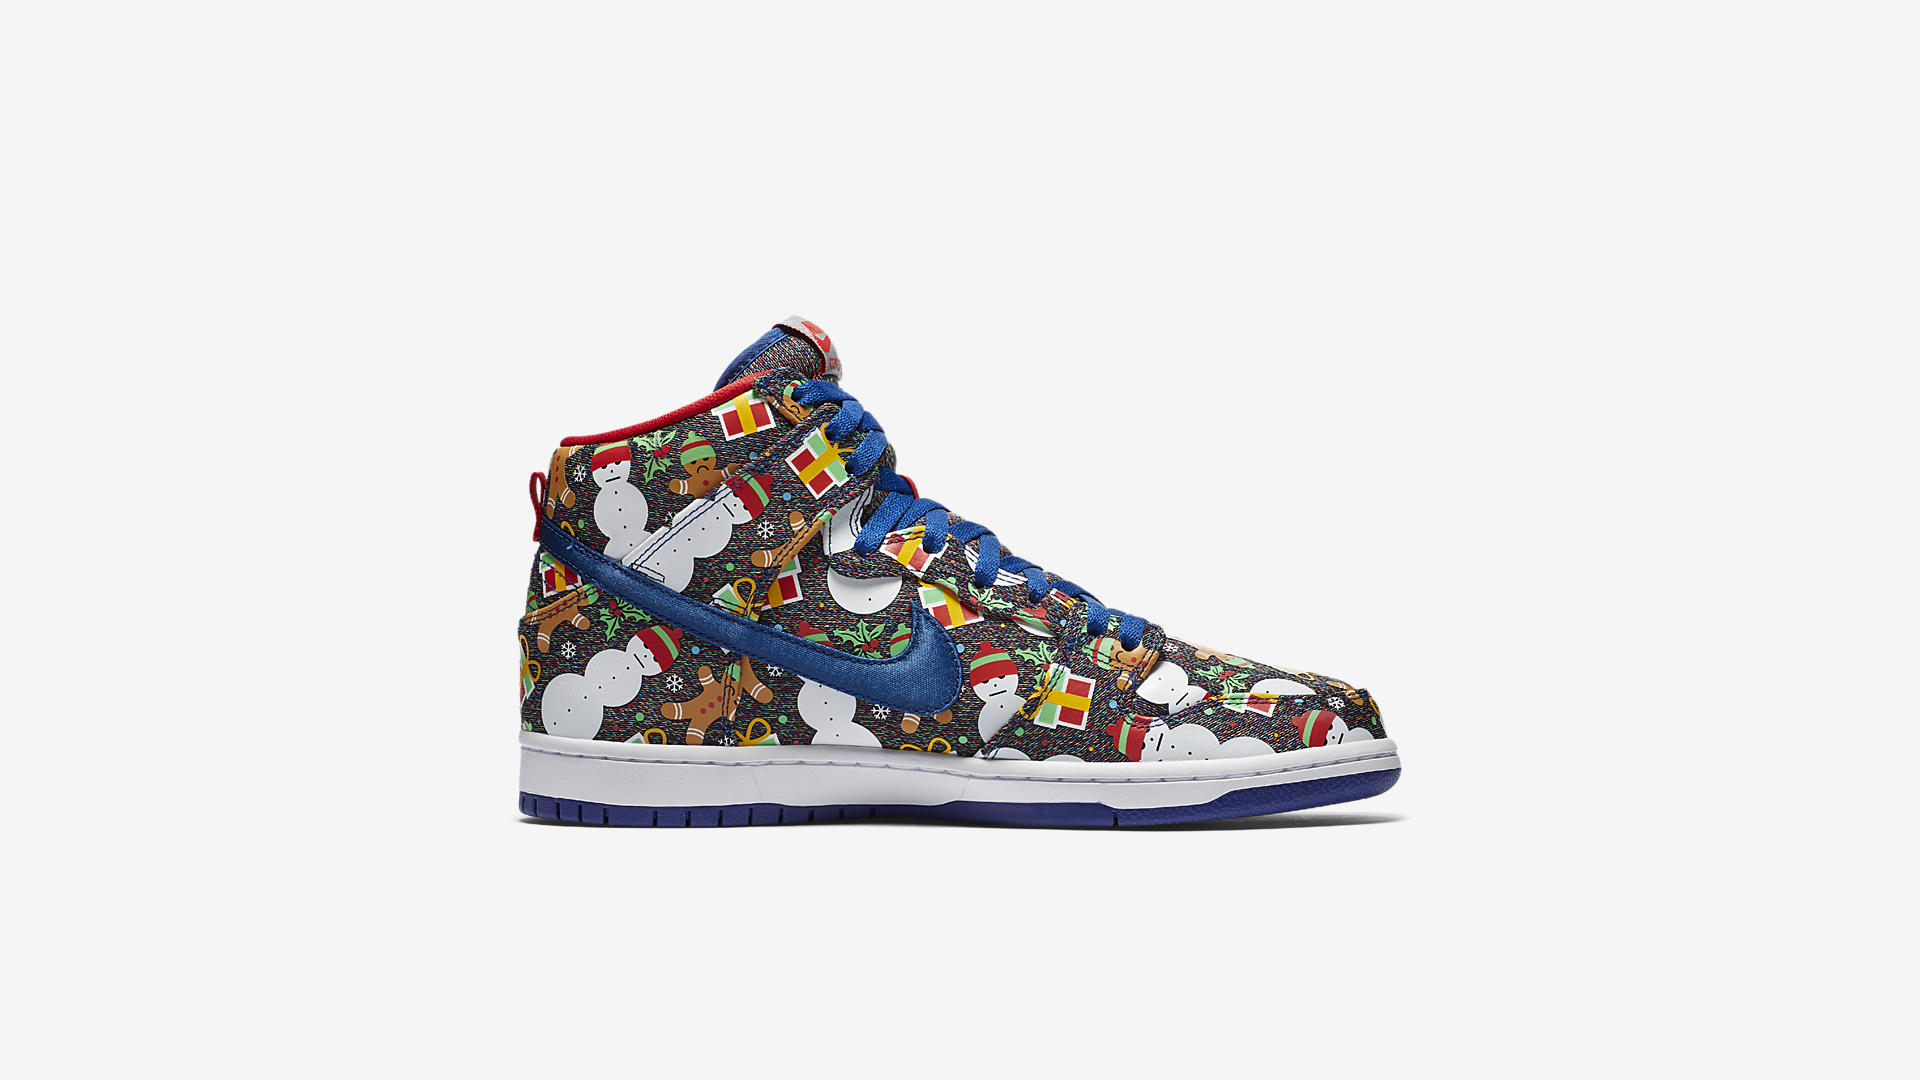 Concepts x Nike SB Dunk Pro High Ugly Sweater 4